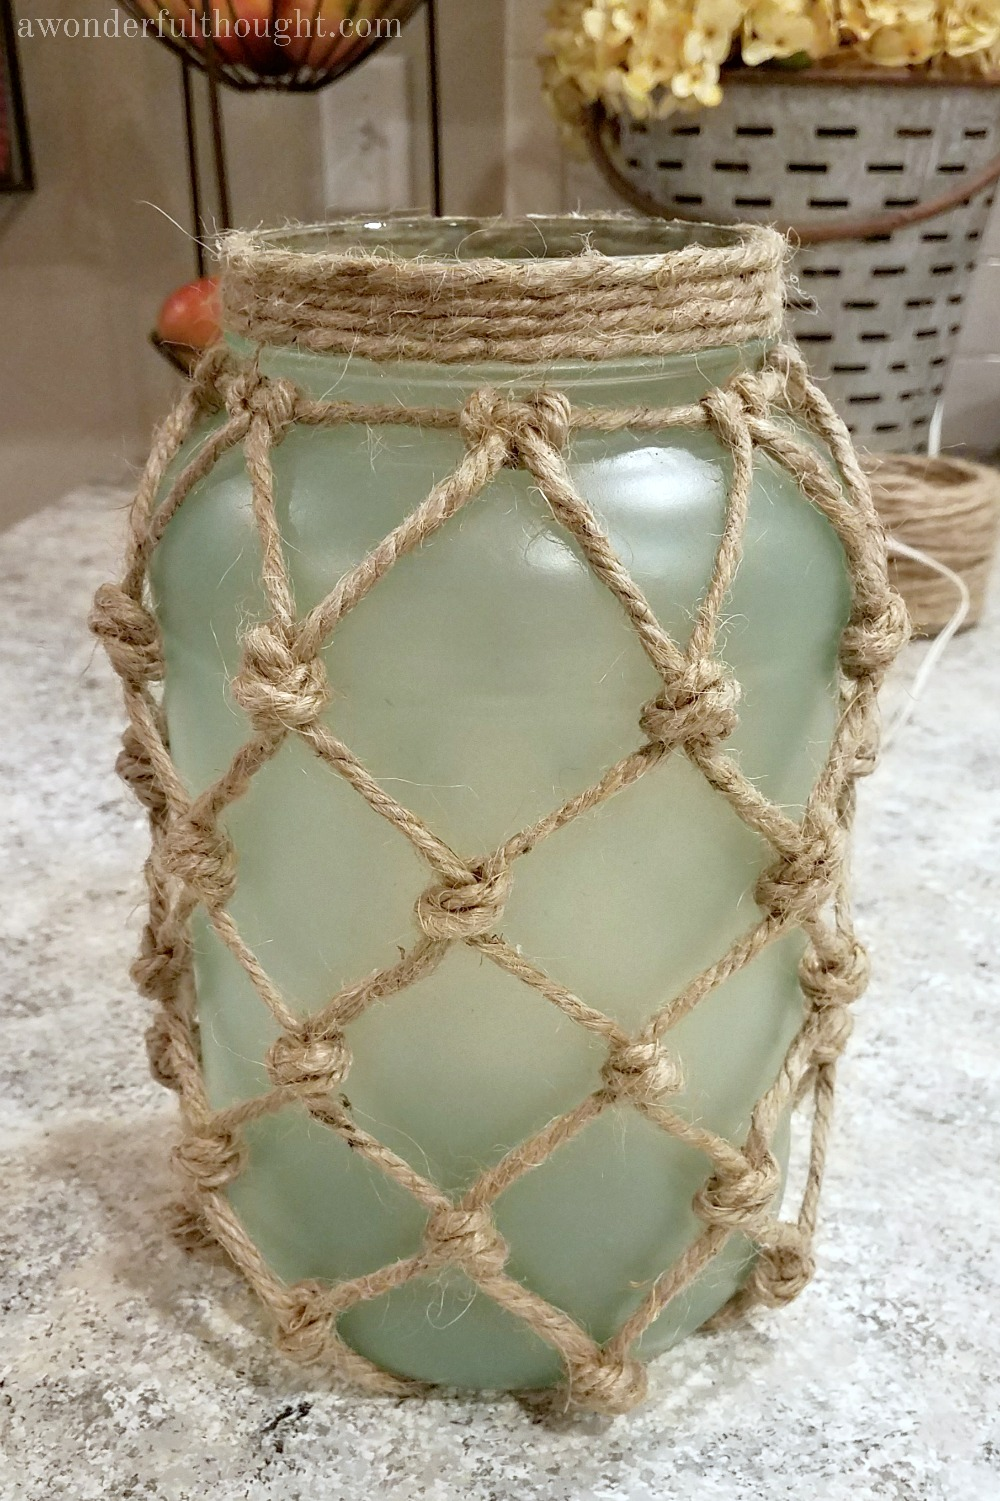 DIY Sea Glass Rope Lantern. Perfect for your beach/coastal decor | awonderfulthought.com